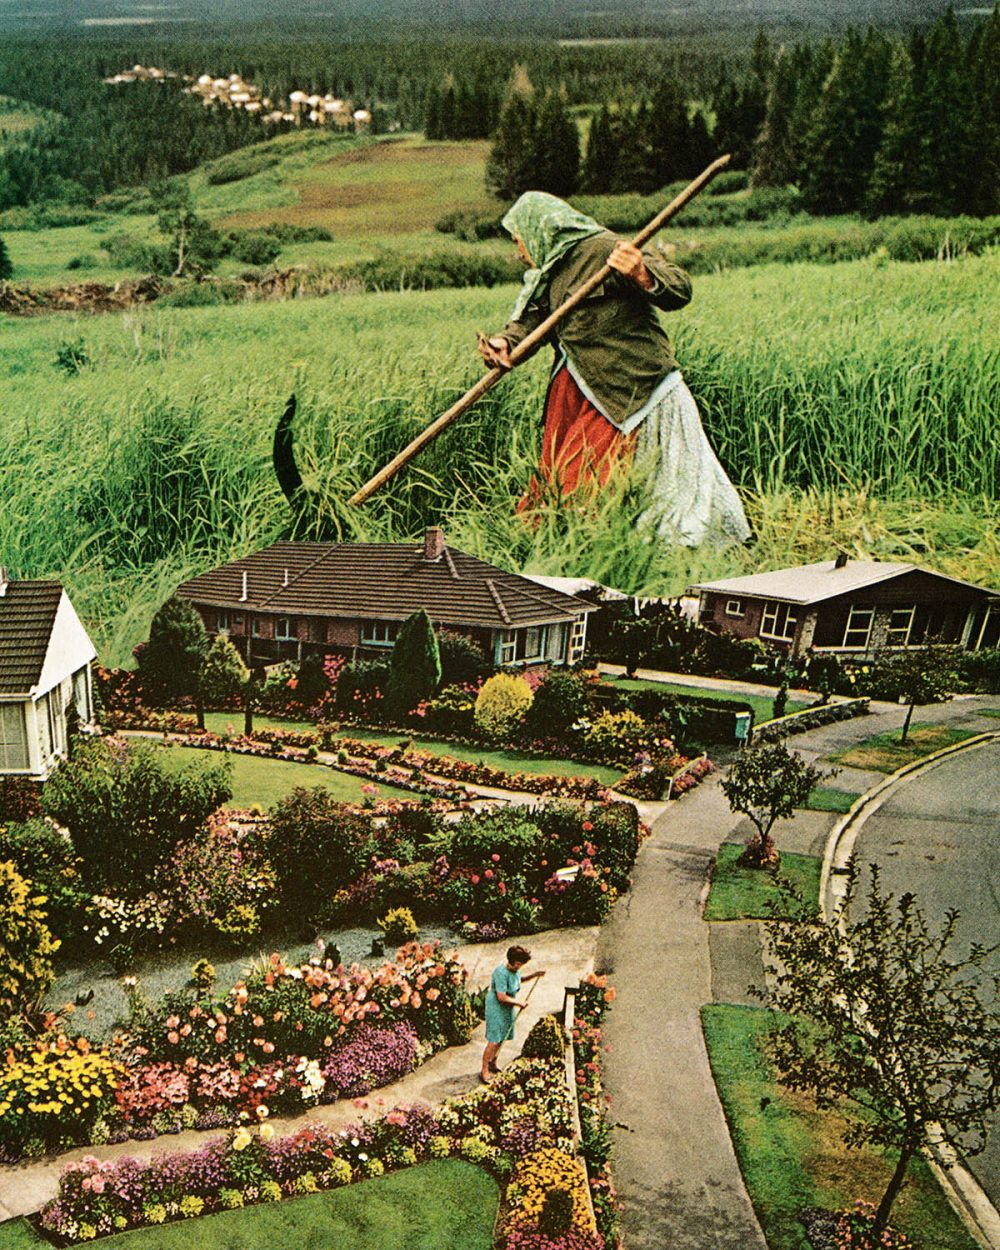 Collage by Karen Lynch featuring two women gardening. One of the women is miniature.